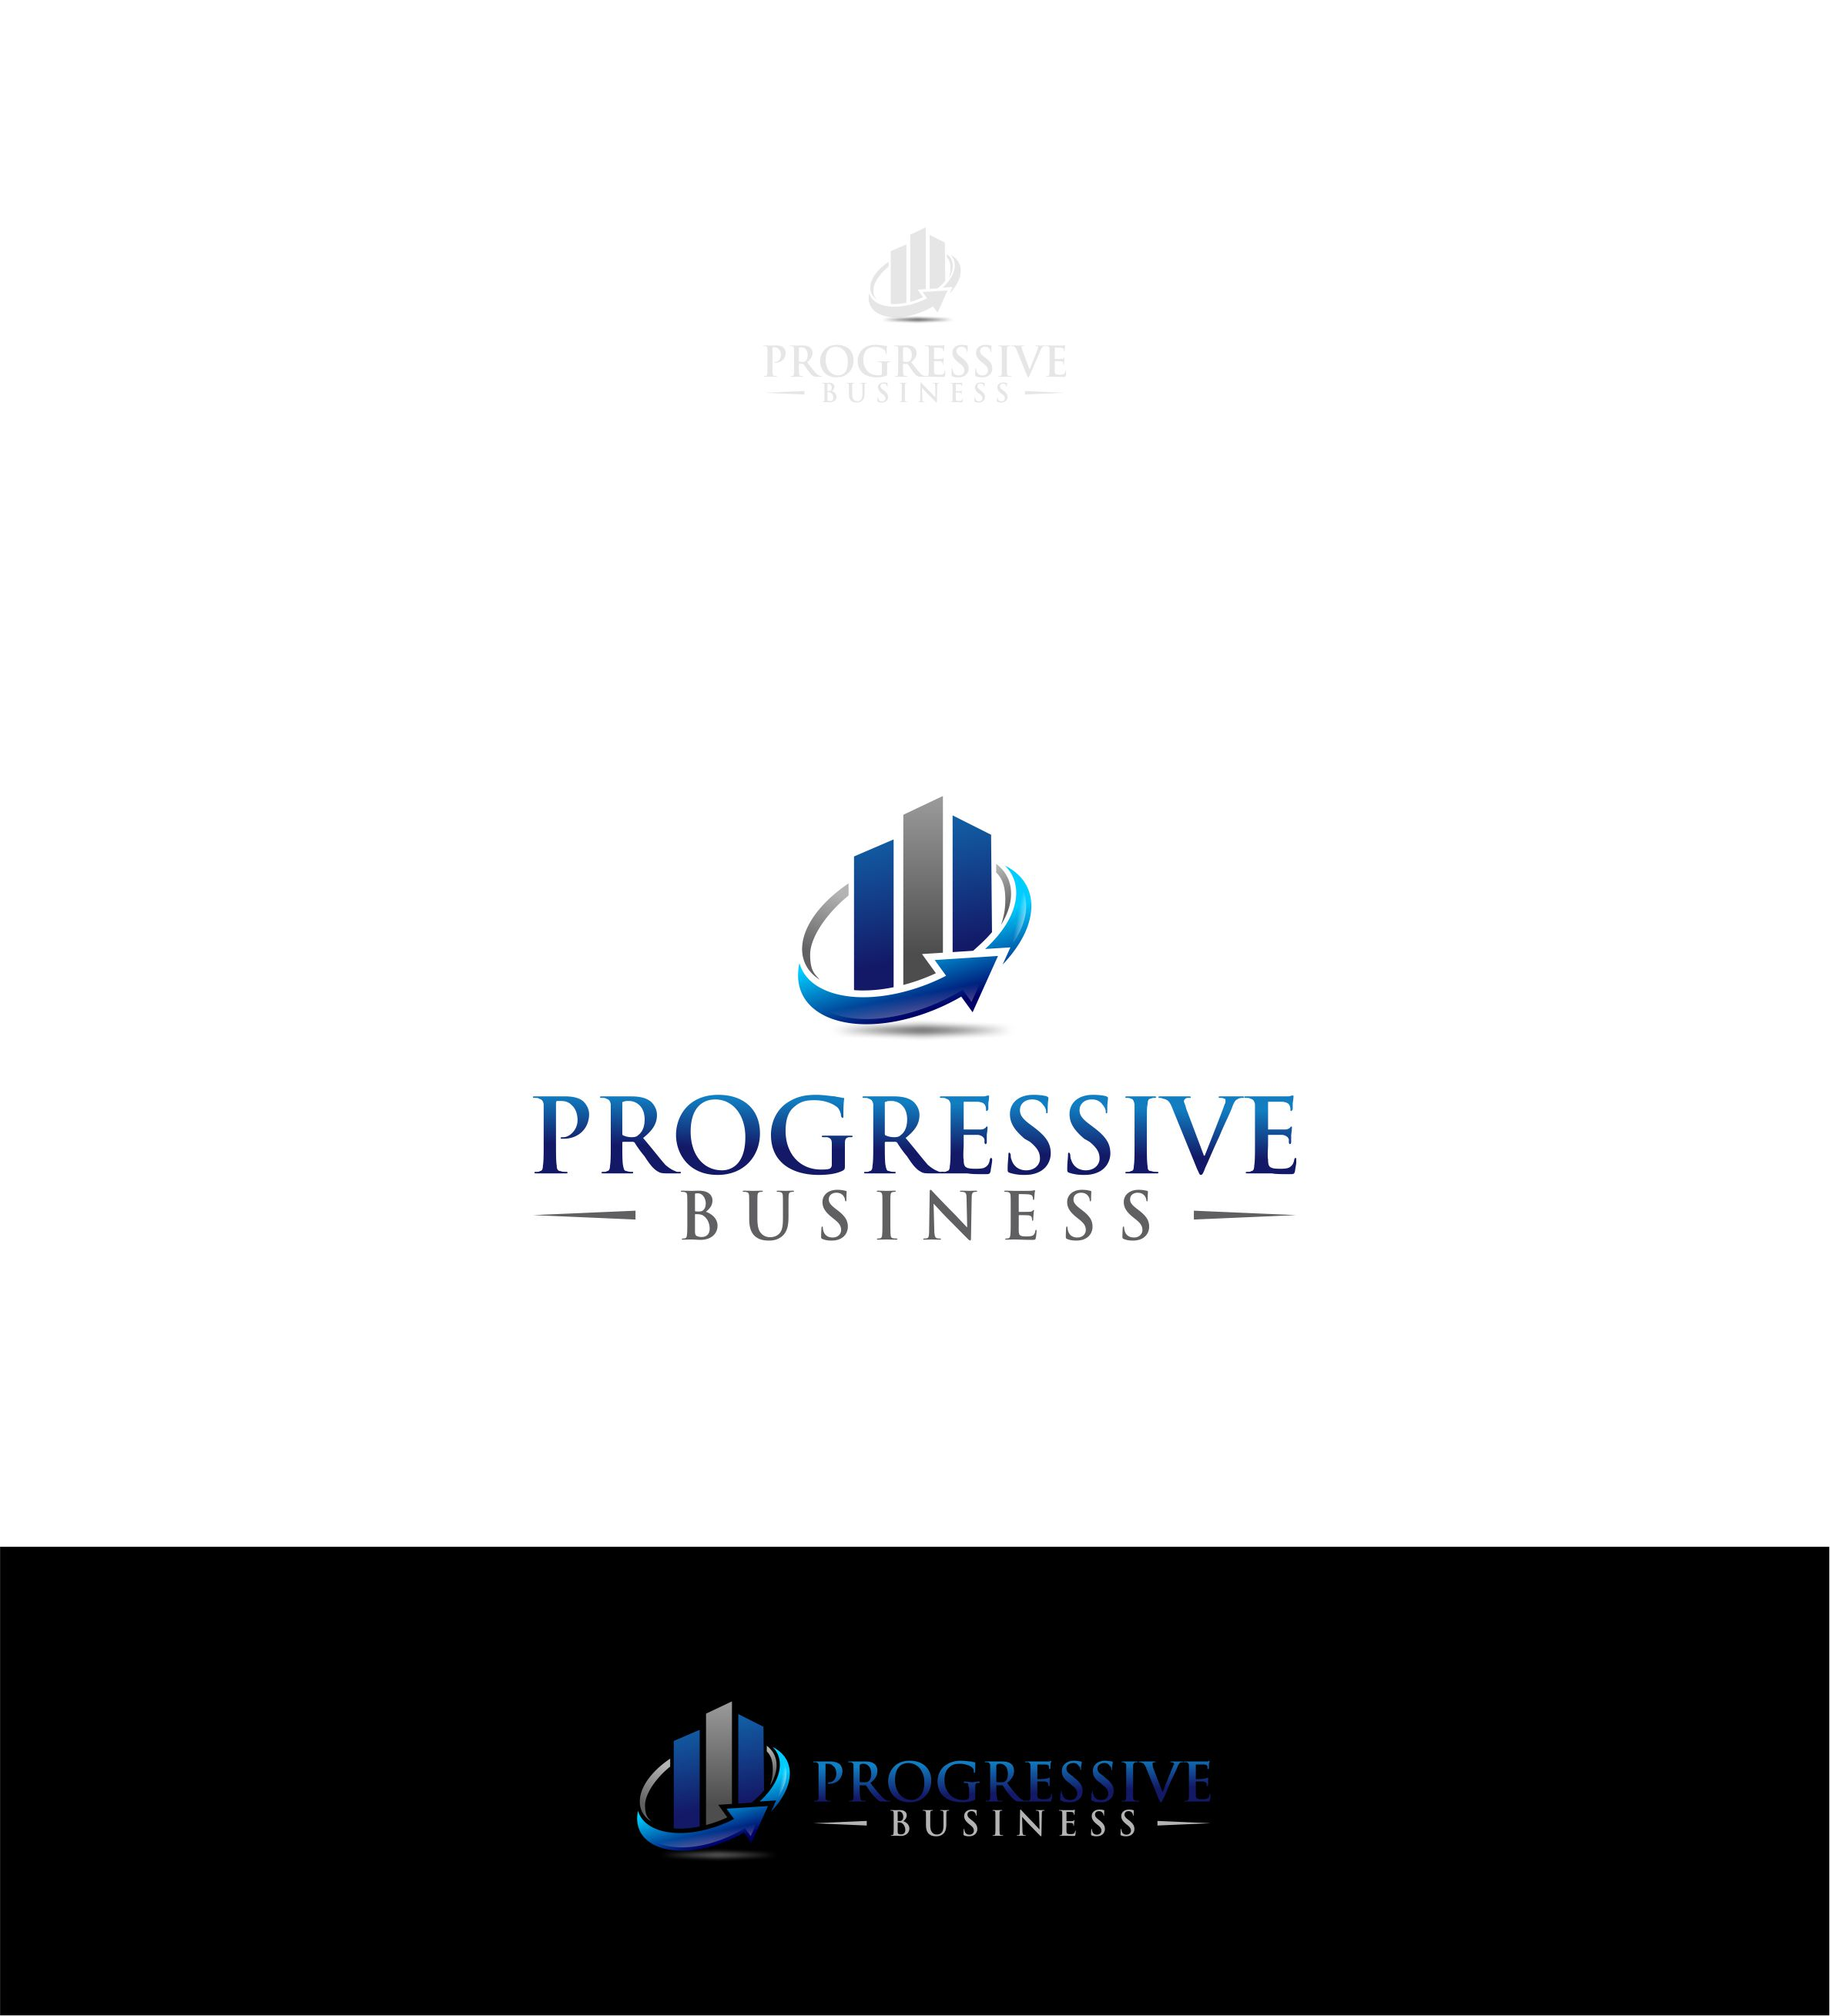 Logo Design by Raymond Garcia - Entry No. 15 in the Logo Design Contest Captivating Logo Design for Progressive Business.